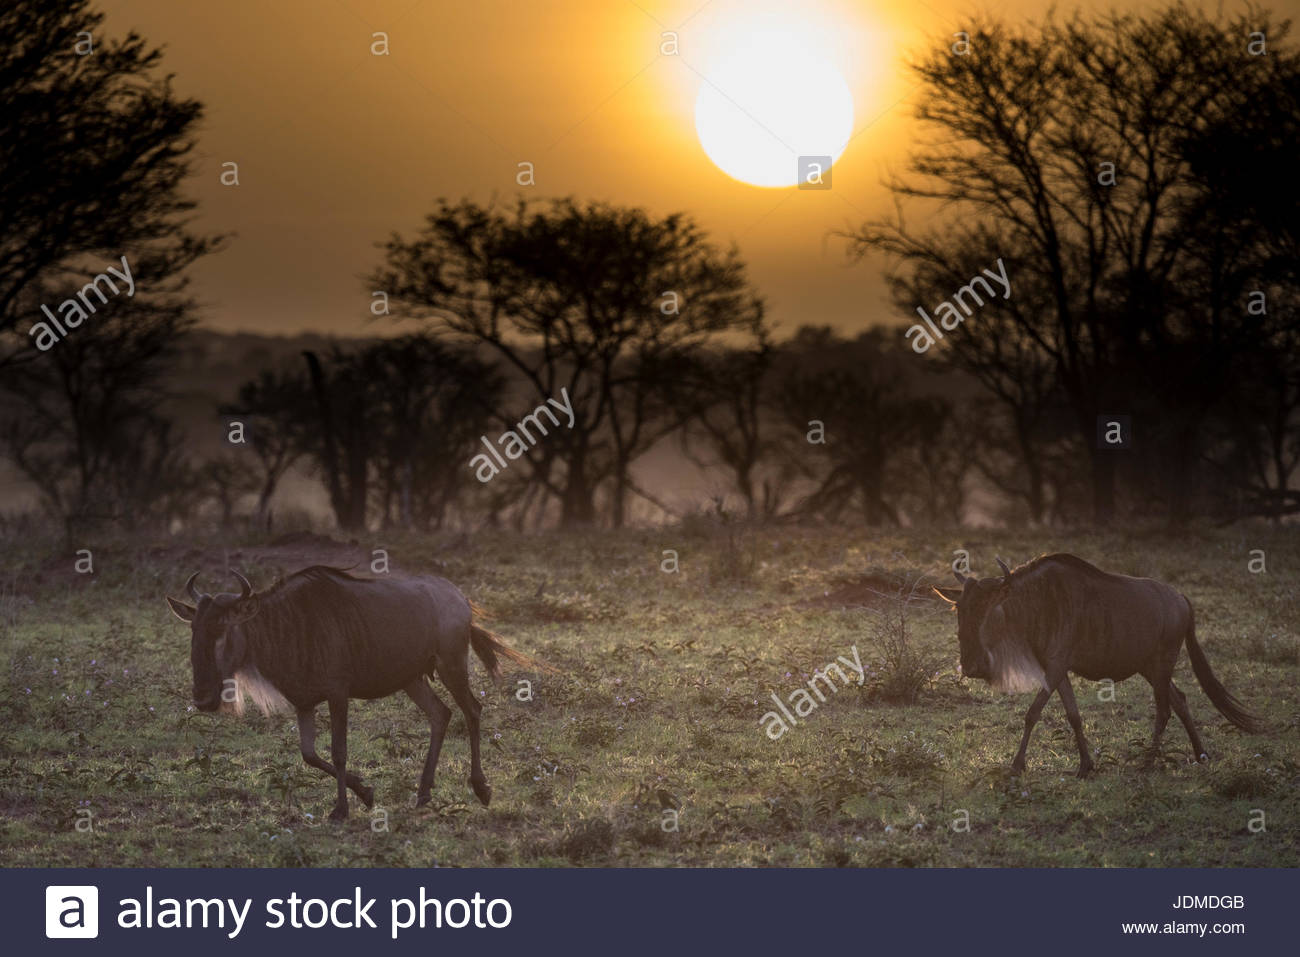 A pair of wildebeest at sunrise in Tanzania's Serengeti National Park. - Stock Image